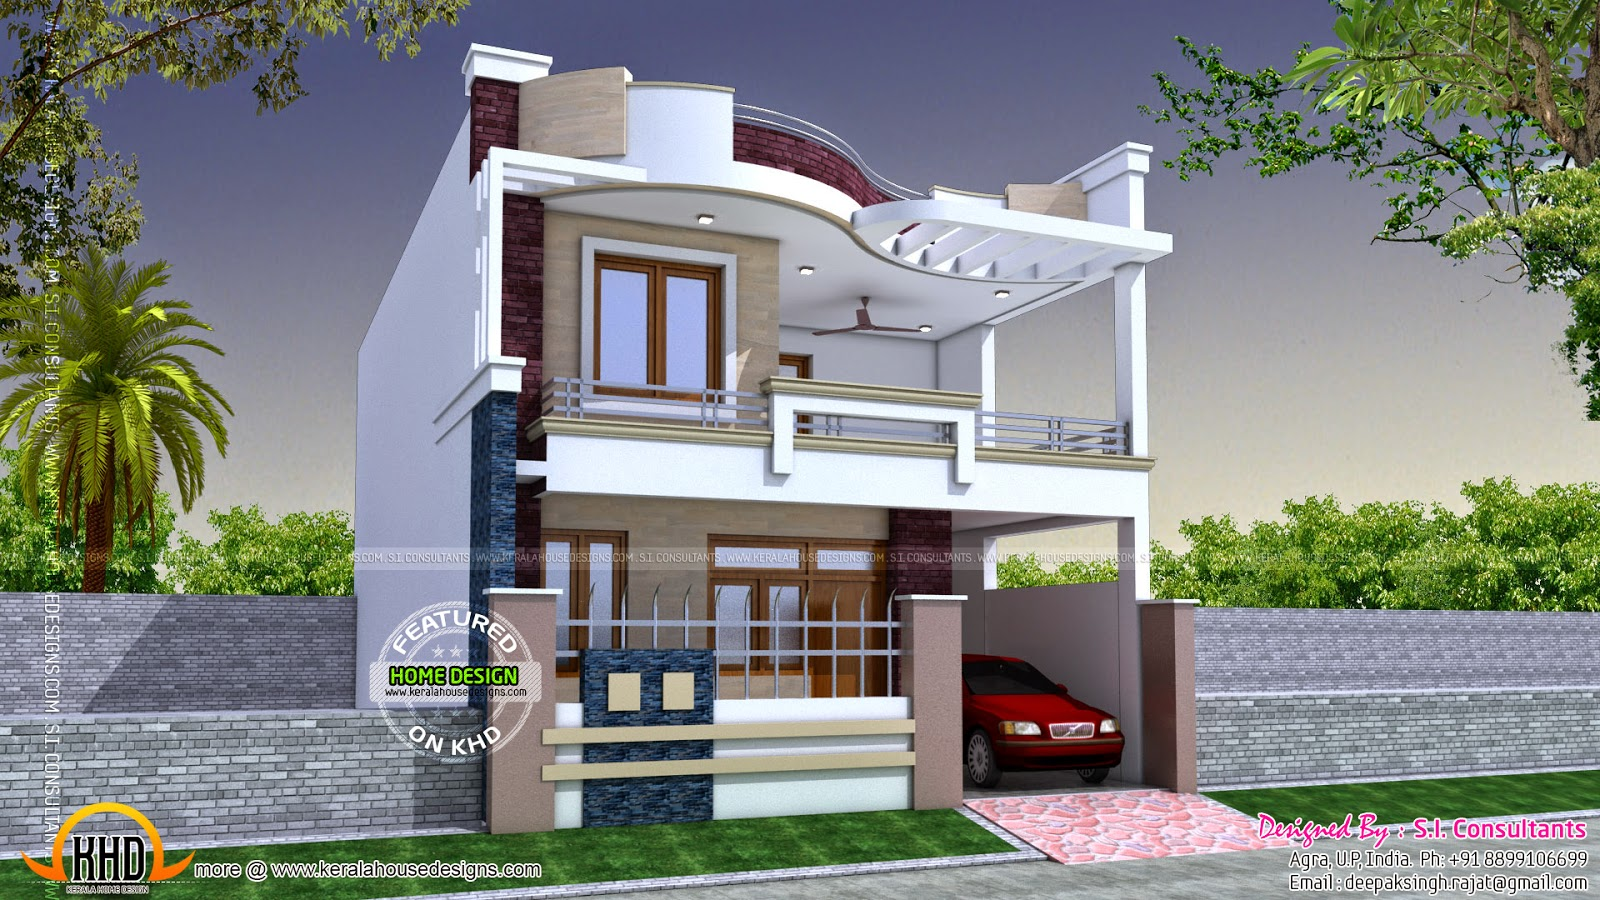 Unique modern house plans modern indian home design for Unique modern house designs